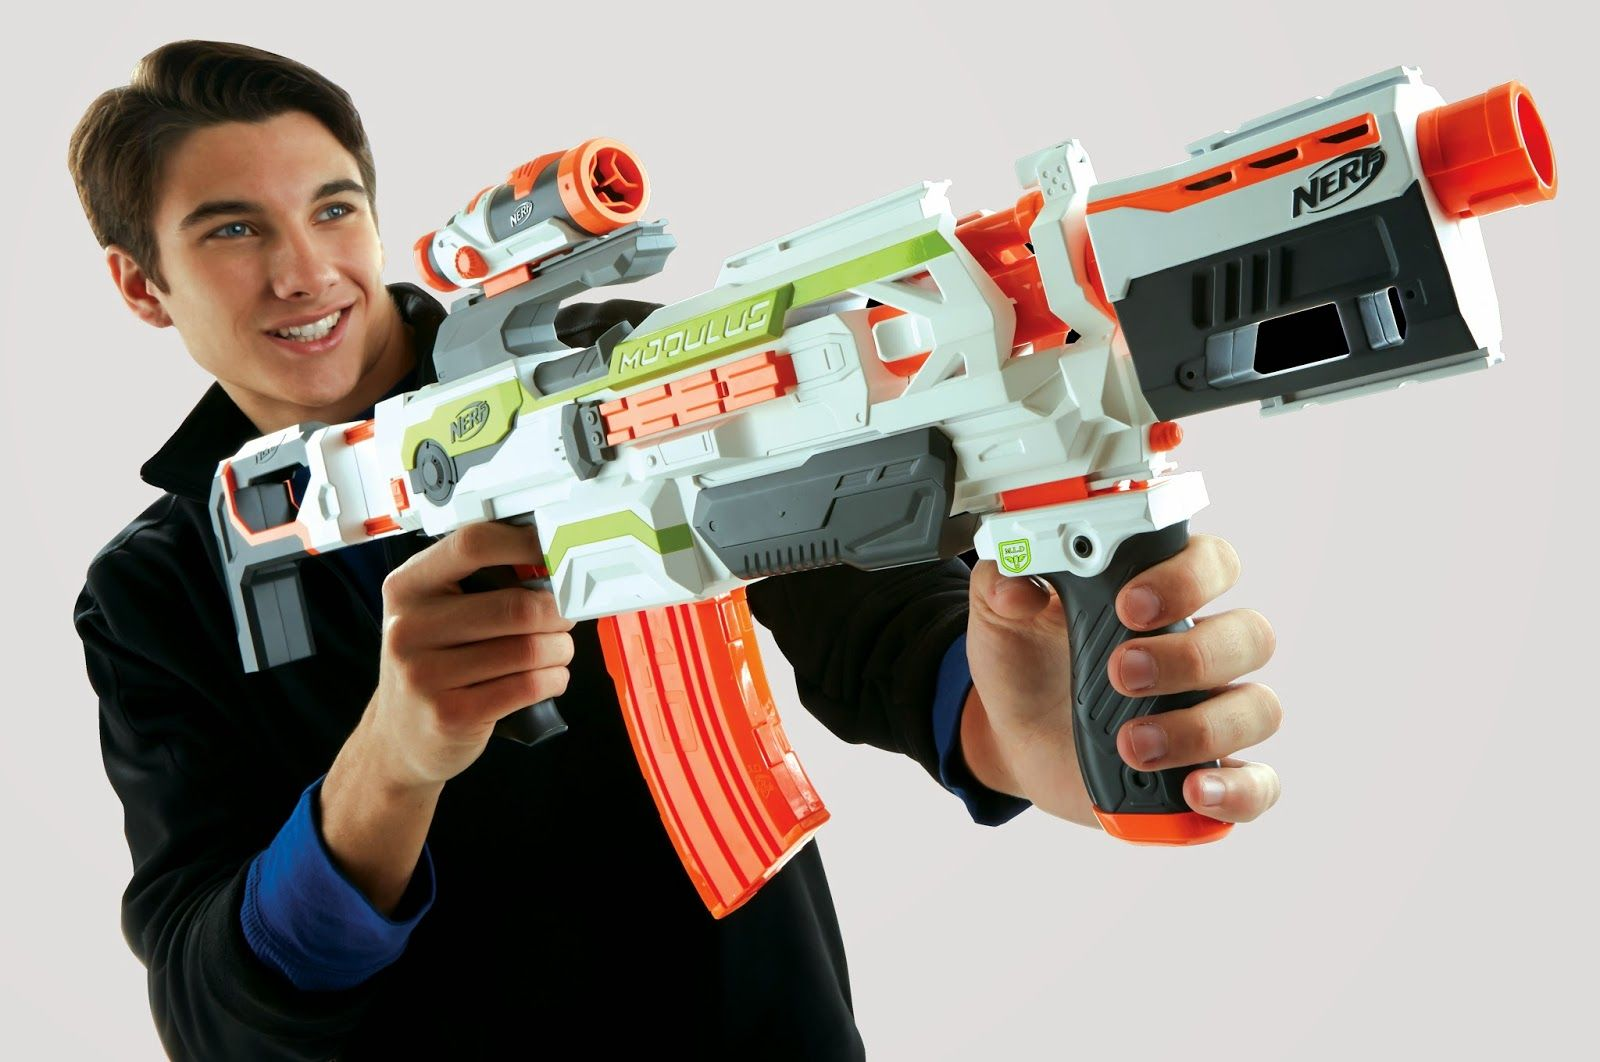 Head over to Walmart.com where you can score this Nerf N-Strike Elite Mega  CycloneShock Blaster for just $10.99 (regularly $19.97).